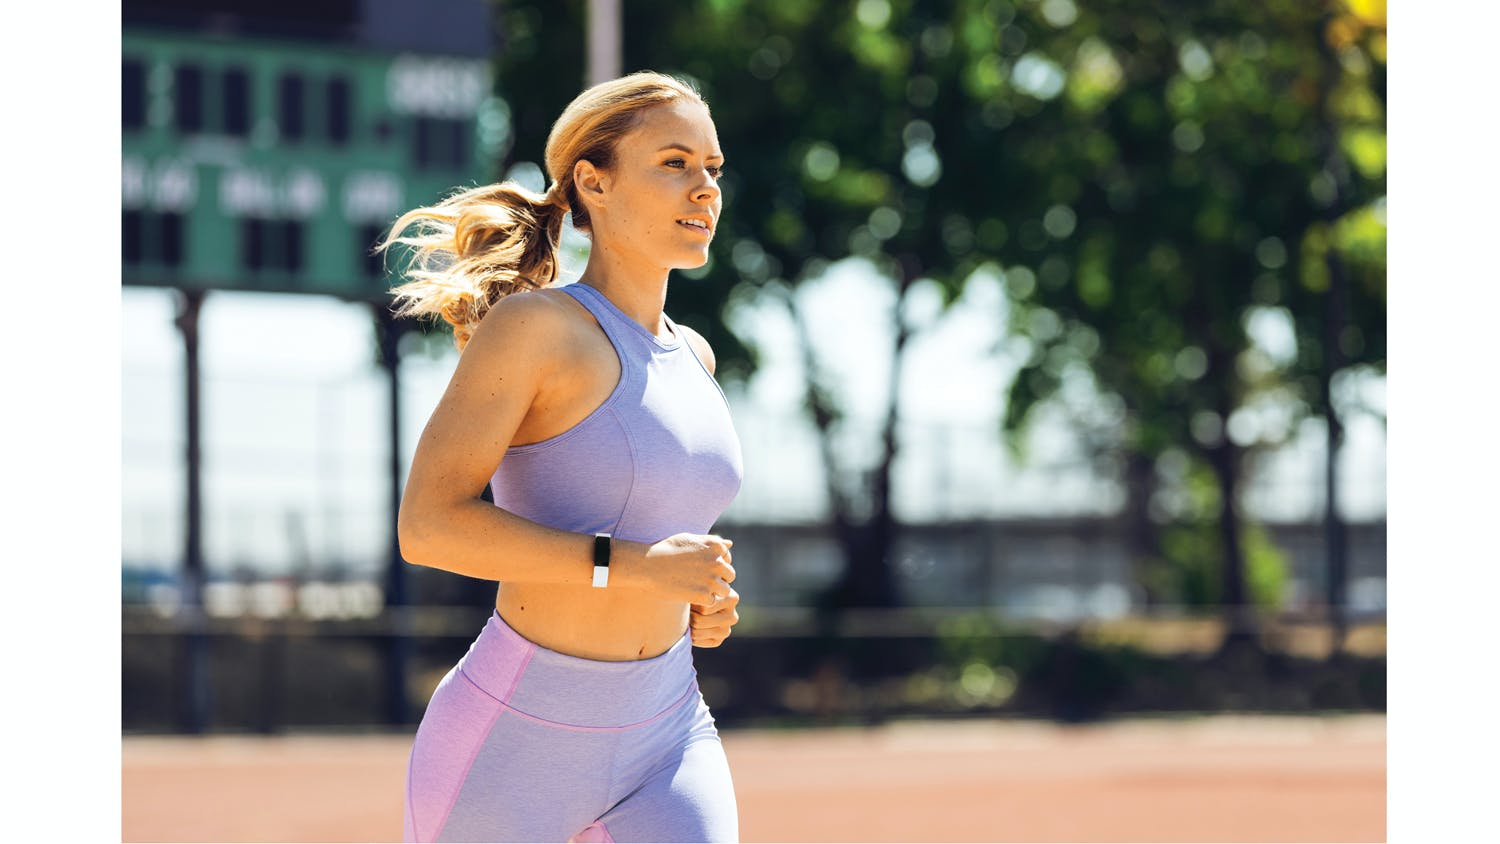 Fitbit Inspire HR - Lifestyle